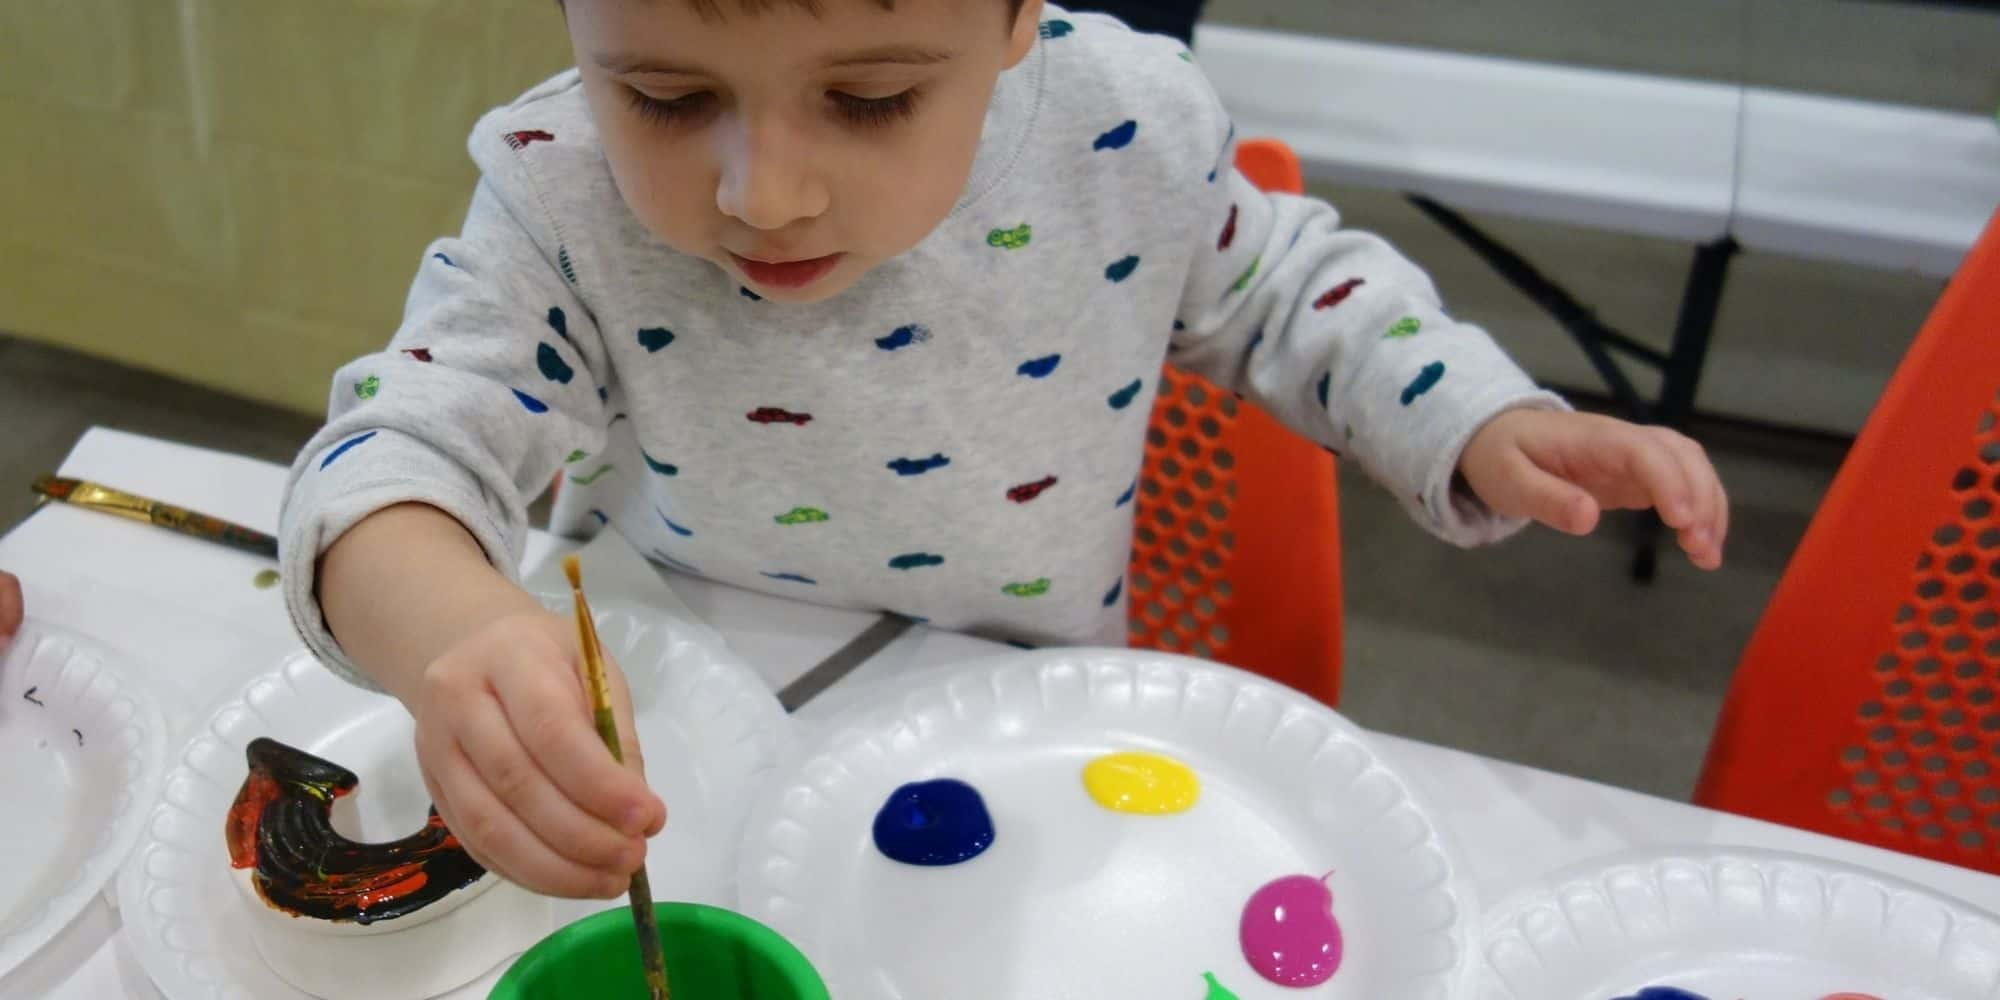 Art Class for Preschoolers Pleasanton California